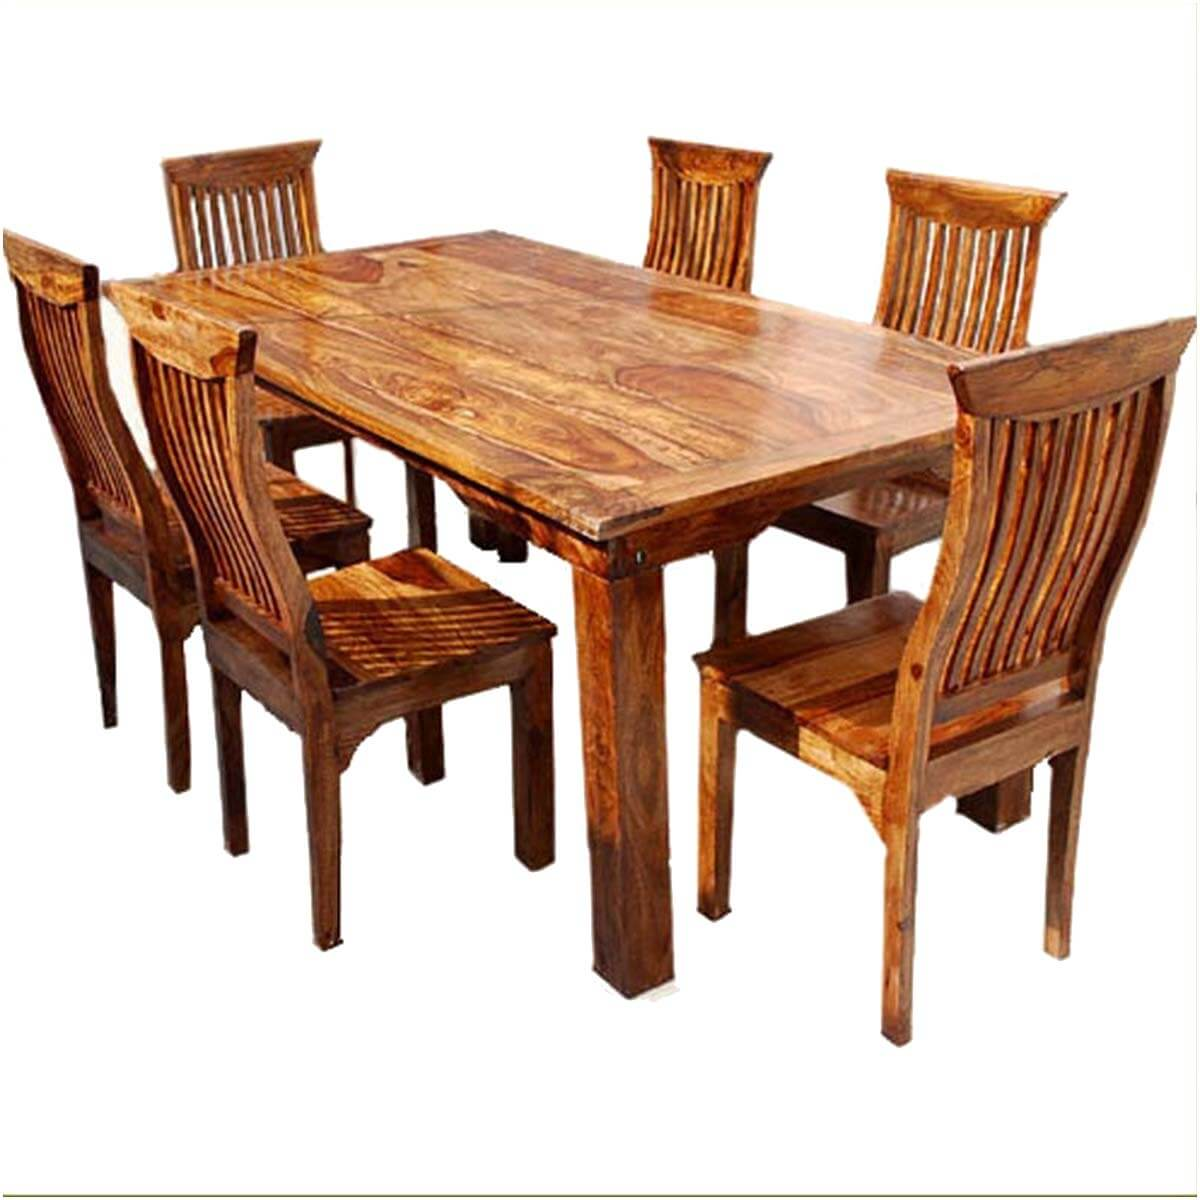 Rustic Dining Chairs Dallas Ranch Solid Wood Rustic Dining Table Chairs And Hutch Set